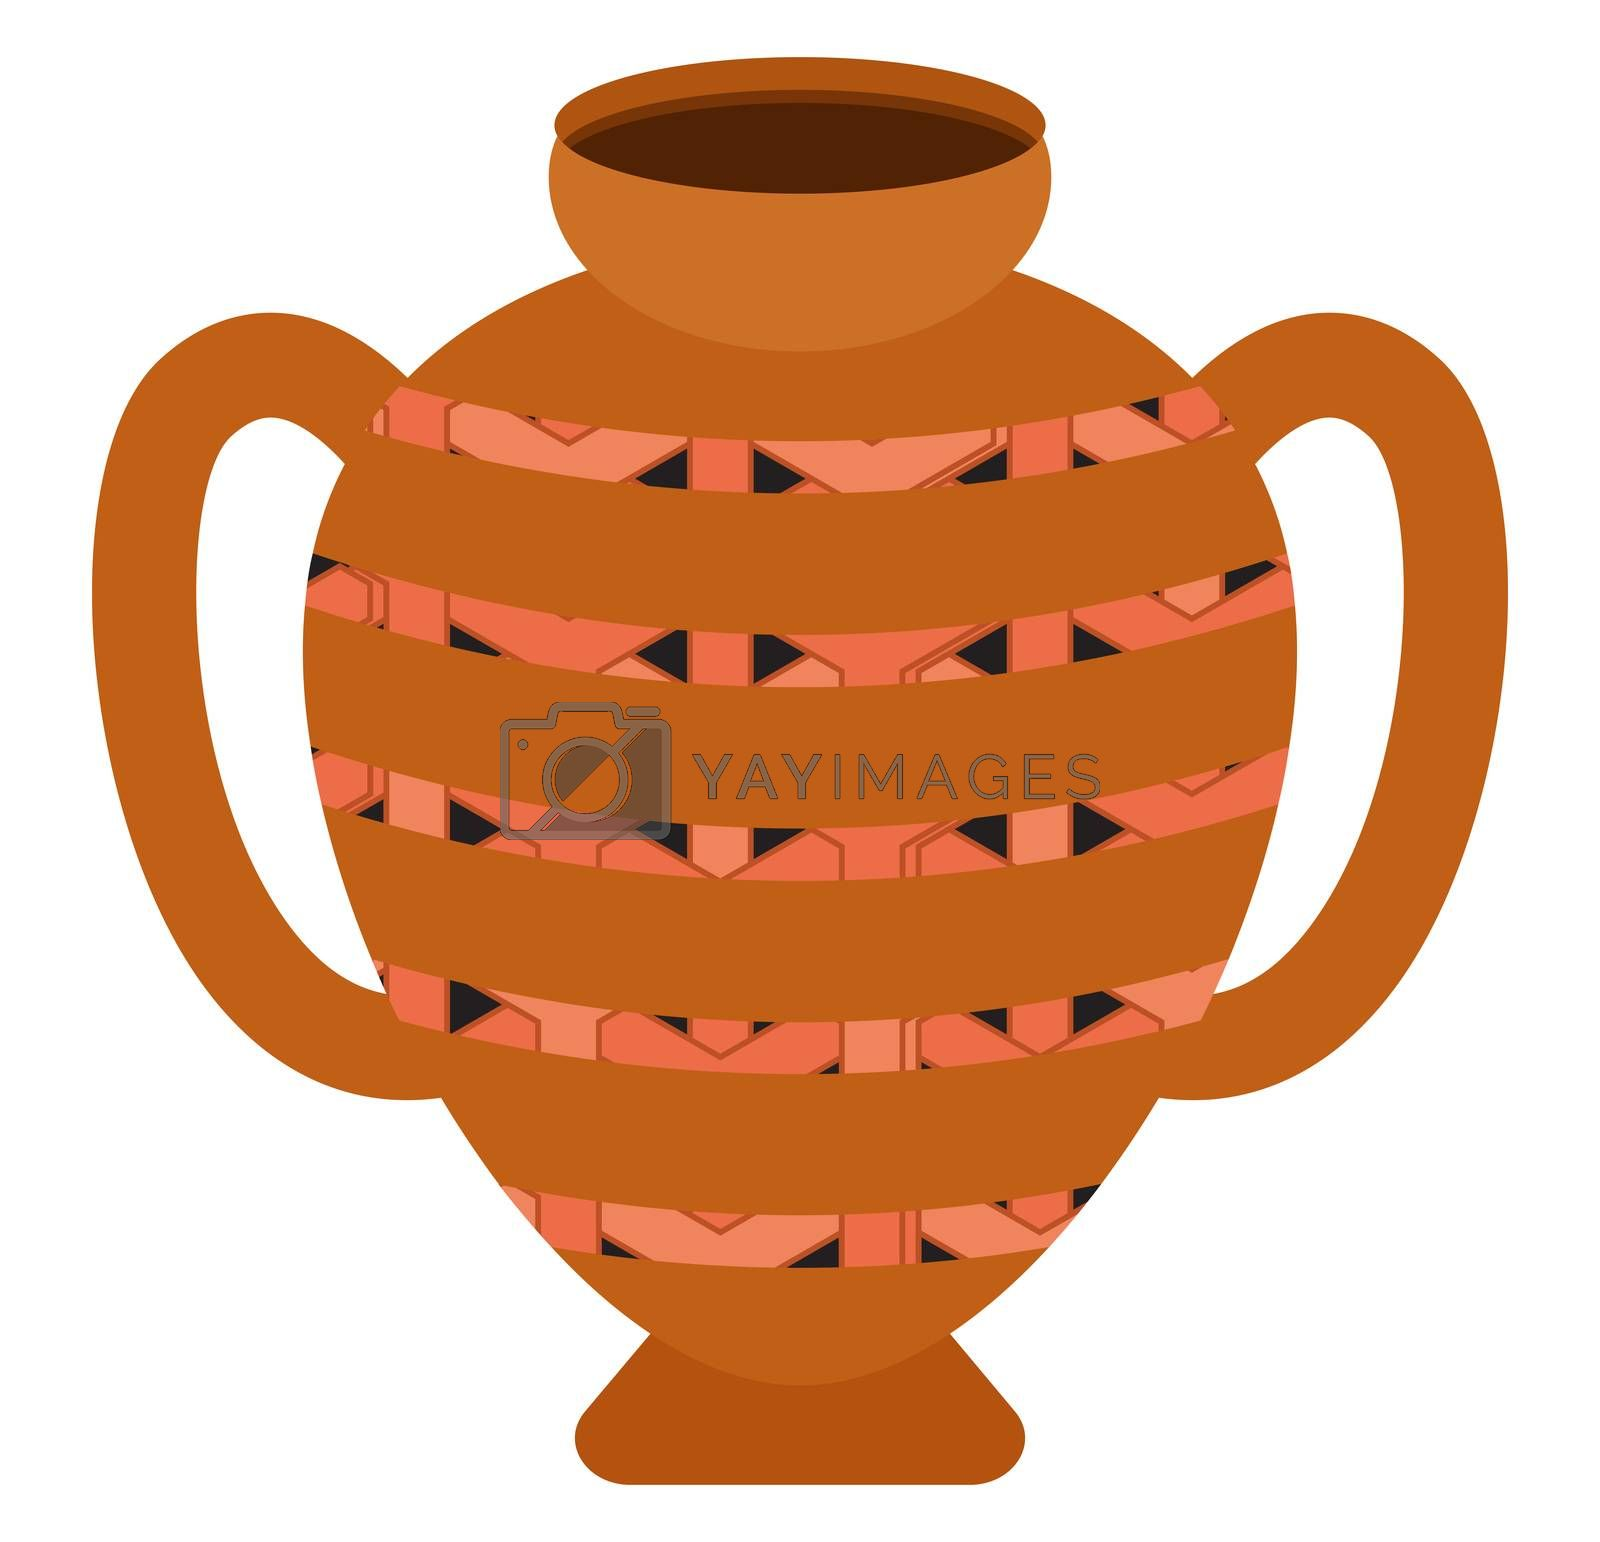 Old vase, illustration, vector on white background